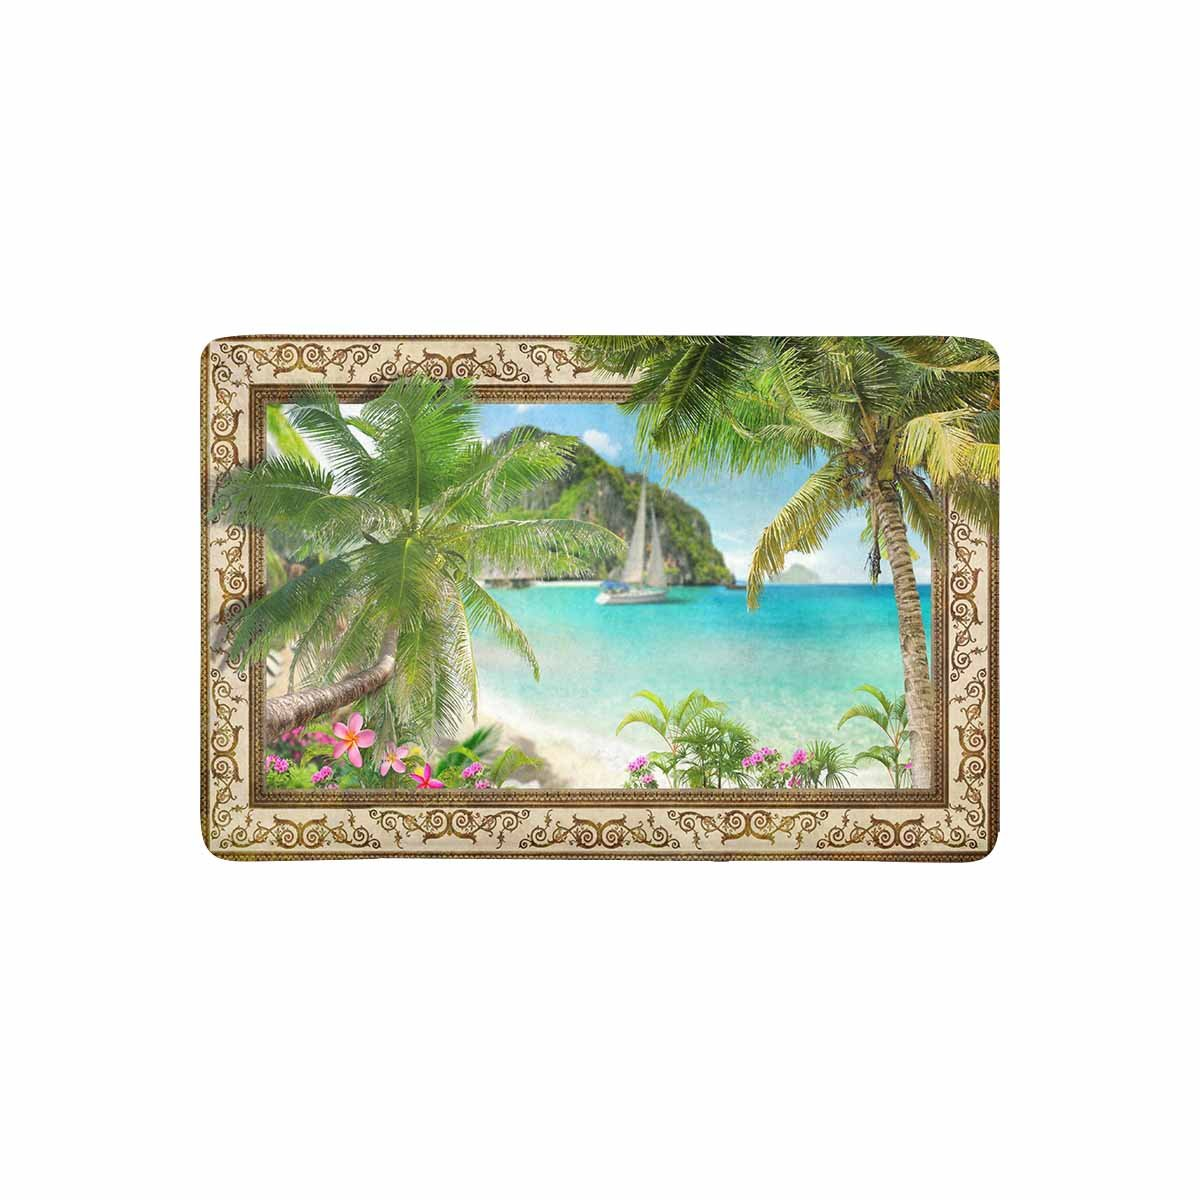 MKHERT Frame with Tropical Palm Trees Sailboat and Pulmeria Flowers Doormat Rug Home Decor Floor Mat Bath Mat 23.6x15.7 inch